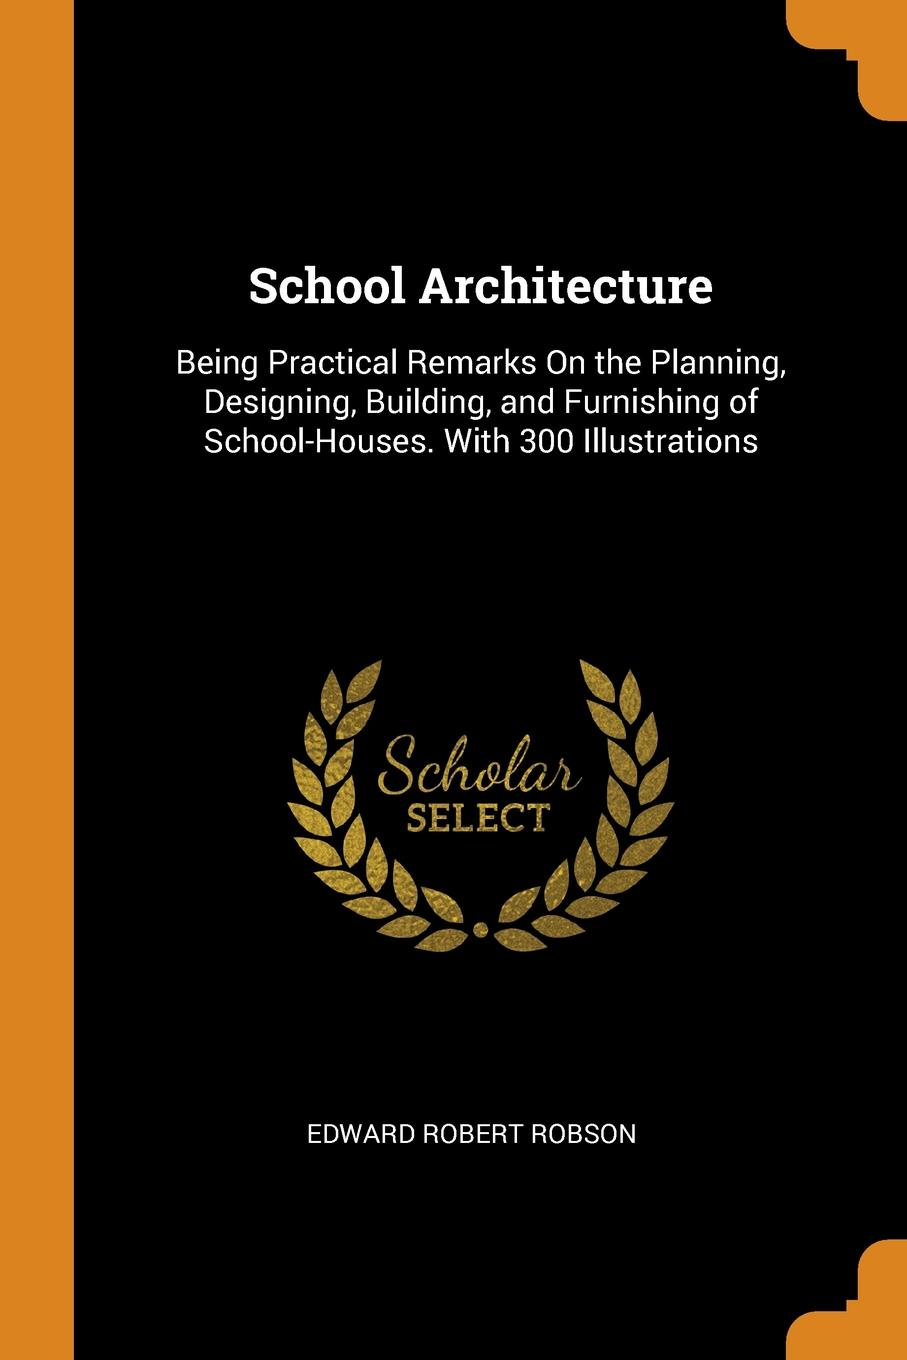 Edward Robert Robson School Architecture. Being Practical Remarks On the Planning, Designing, Building, and Furnishing of School-Houses. With 300 Illustrations